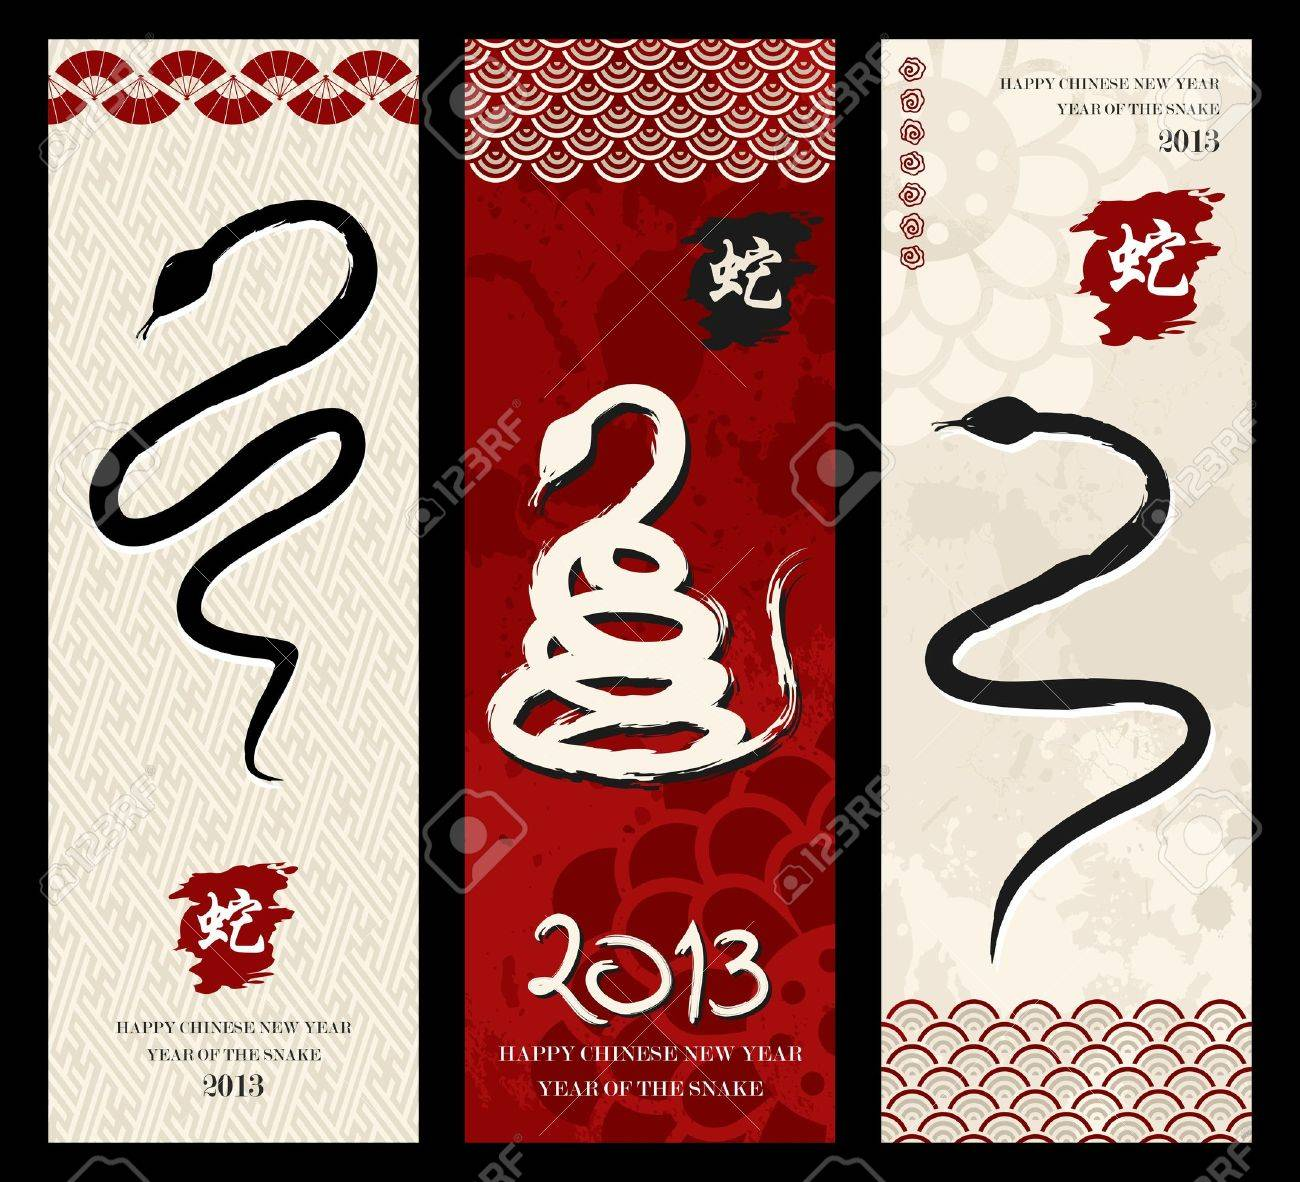 2013 chinese new year of the snake brush style banners set illustration layered for easy - Chinese New Year 1993